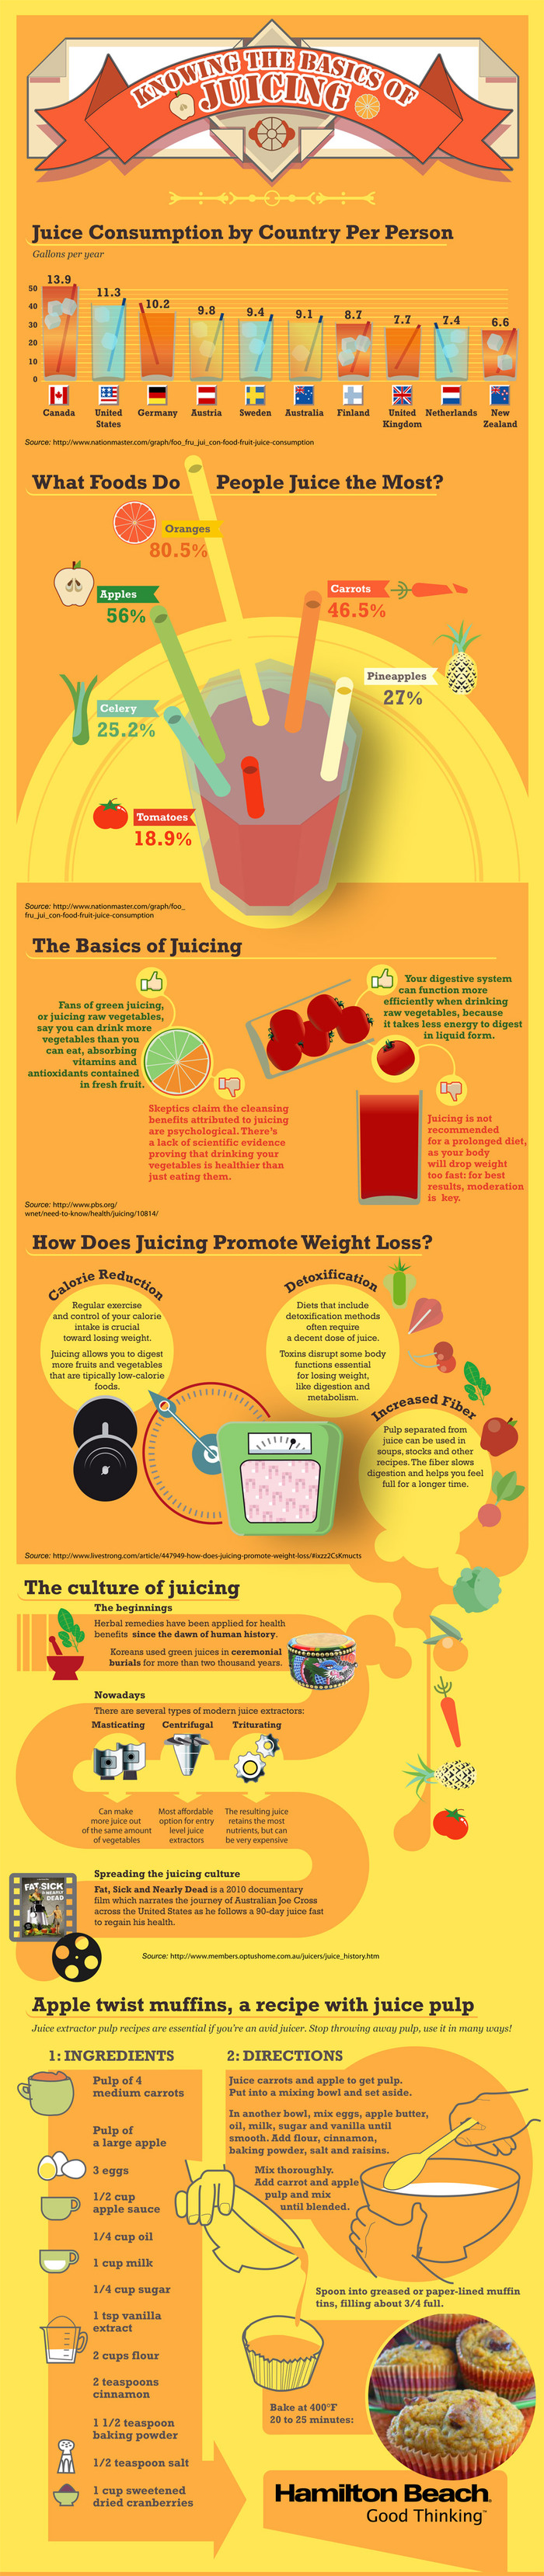 Knowing the Basics of Juicing